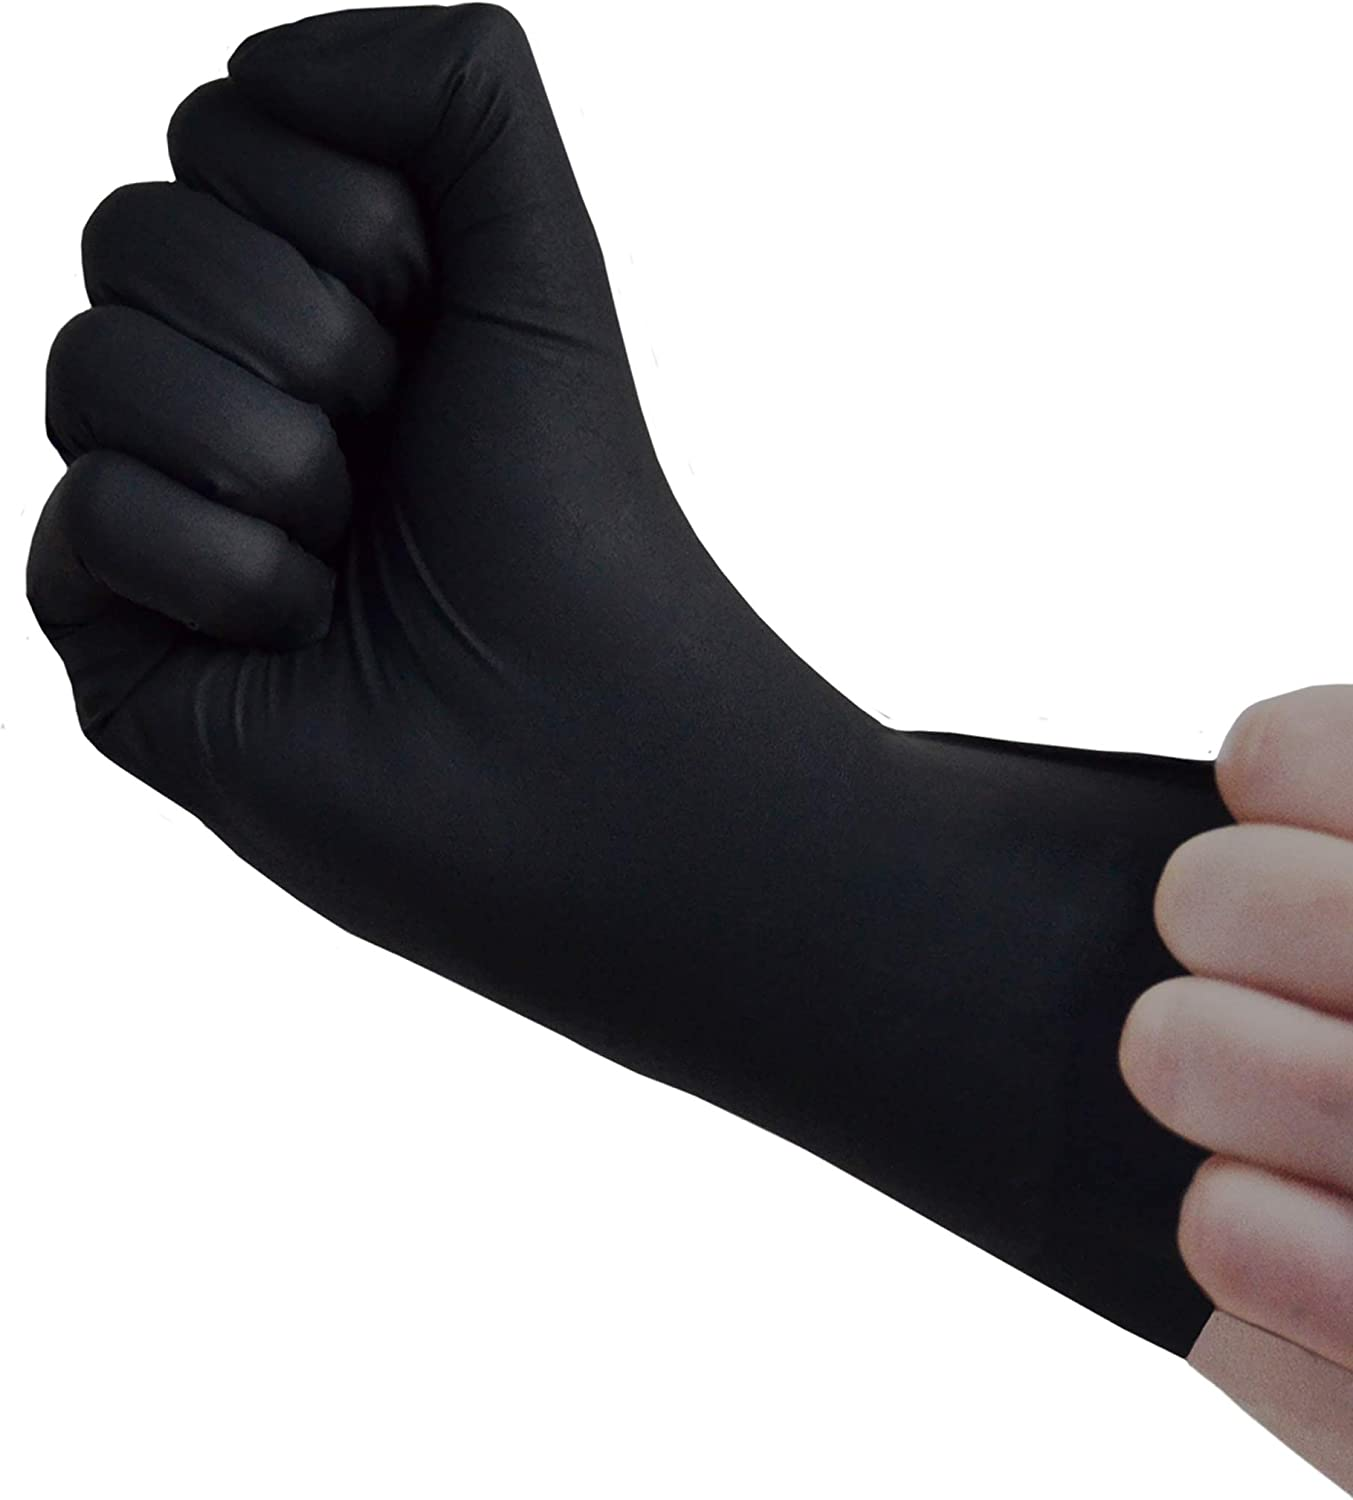 Colour: Black Hevea Size: M Powder- and latex-free Ultra-thick disposable nitrile gloves Pack of 2 boxes with 100 gloves each Medium